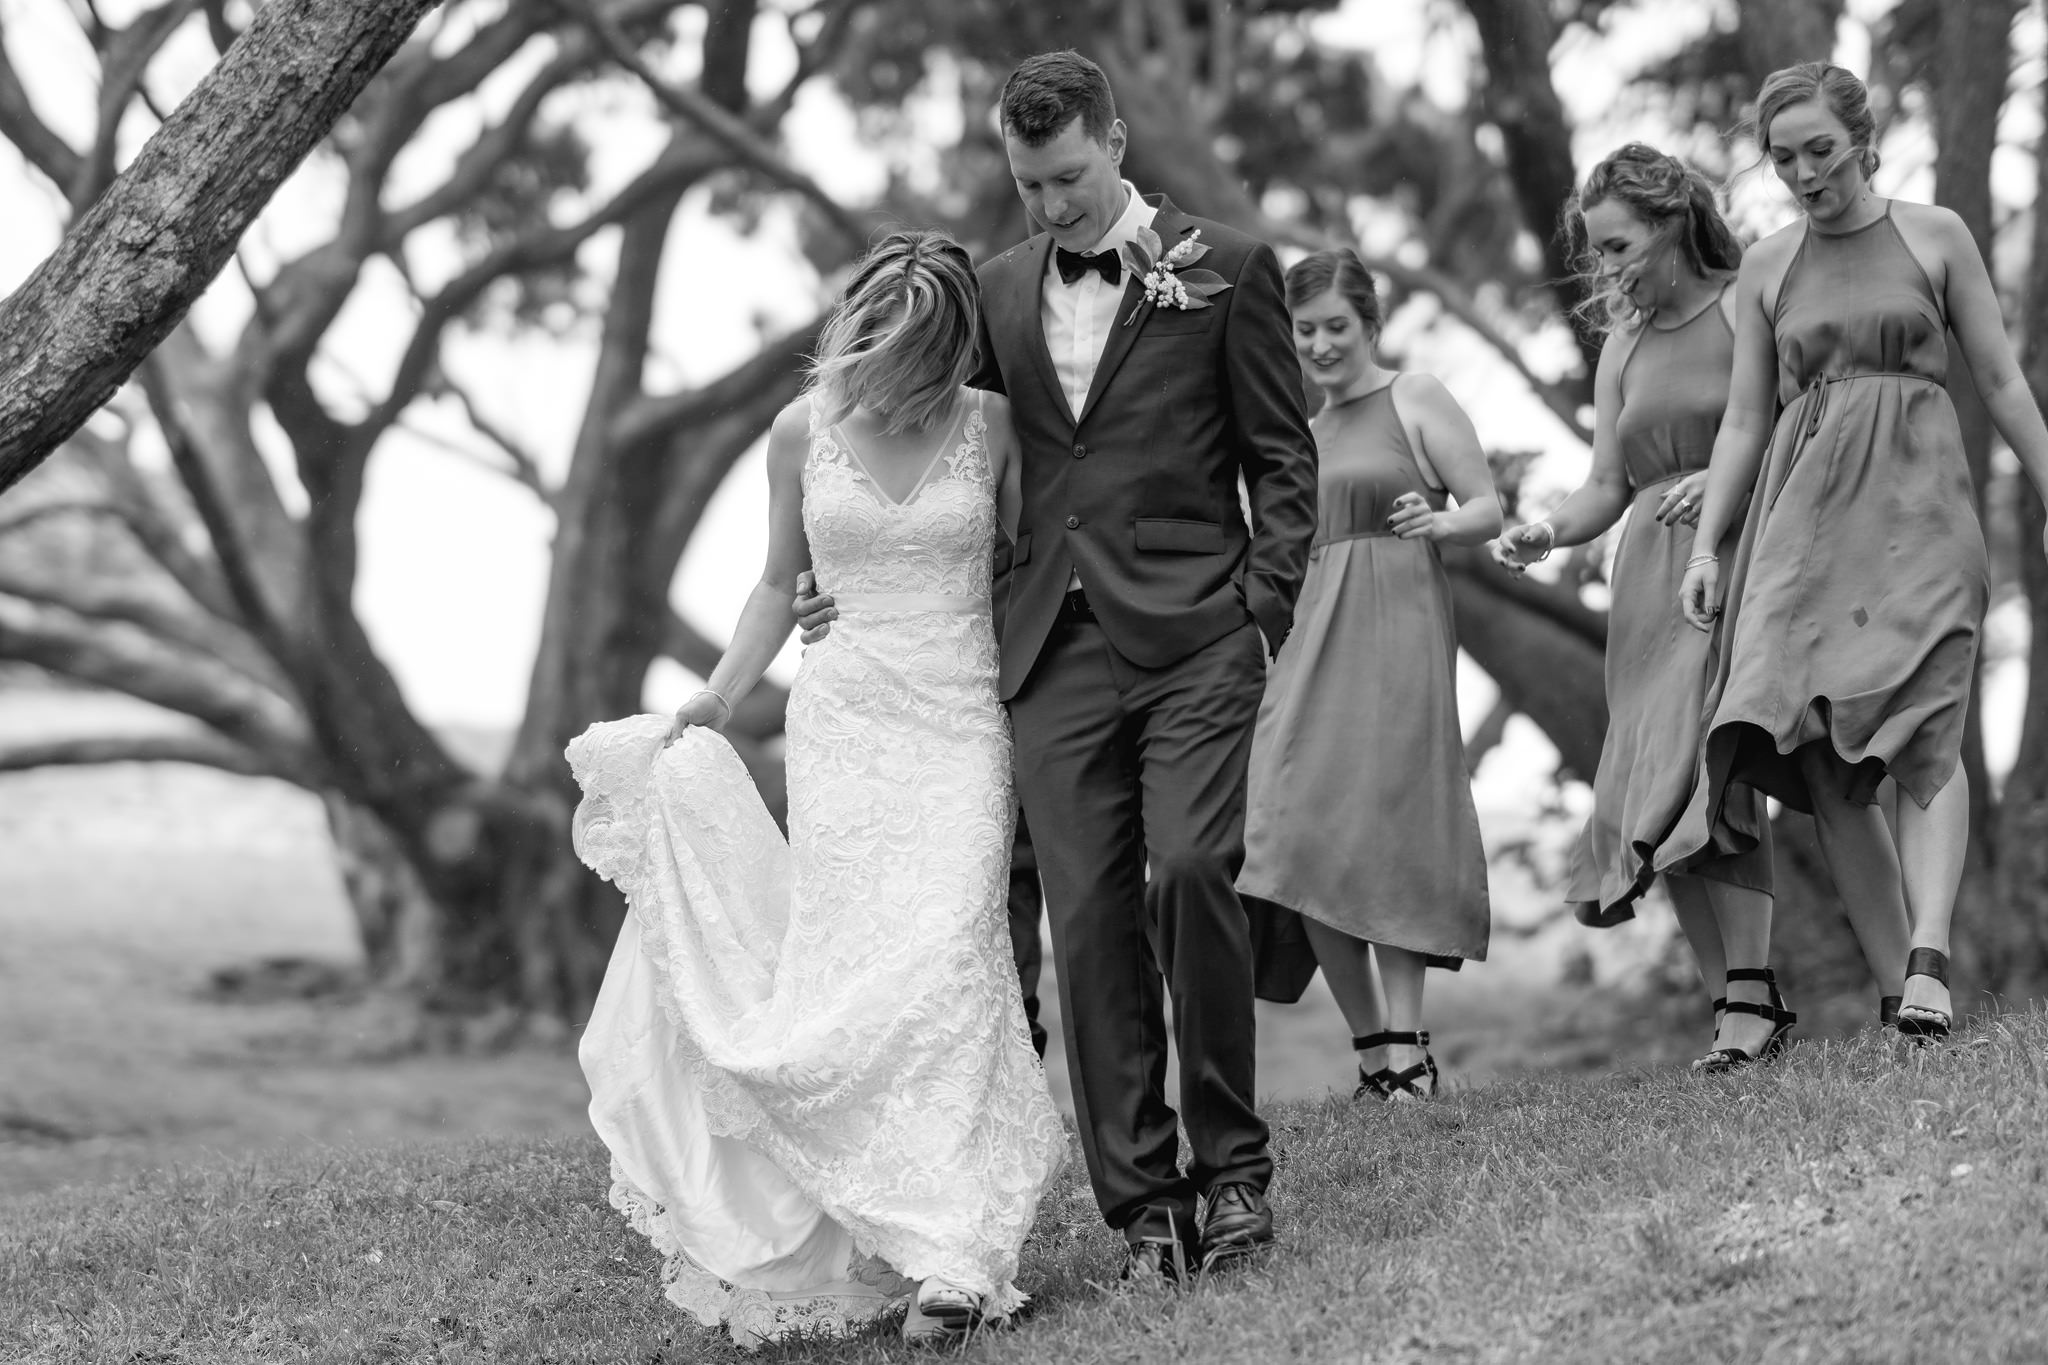 newfound-s-a-tauranga-new-zealand-wedding-photography-234